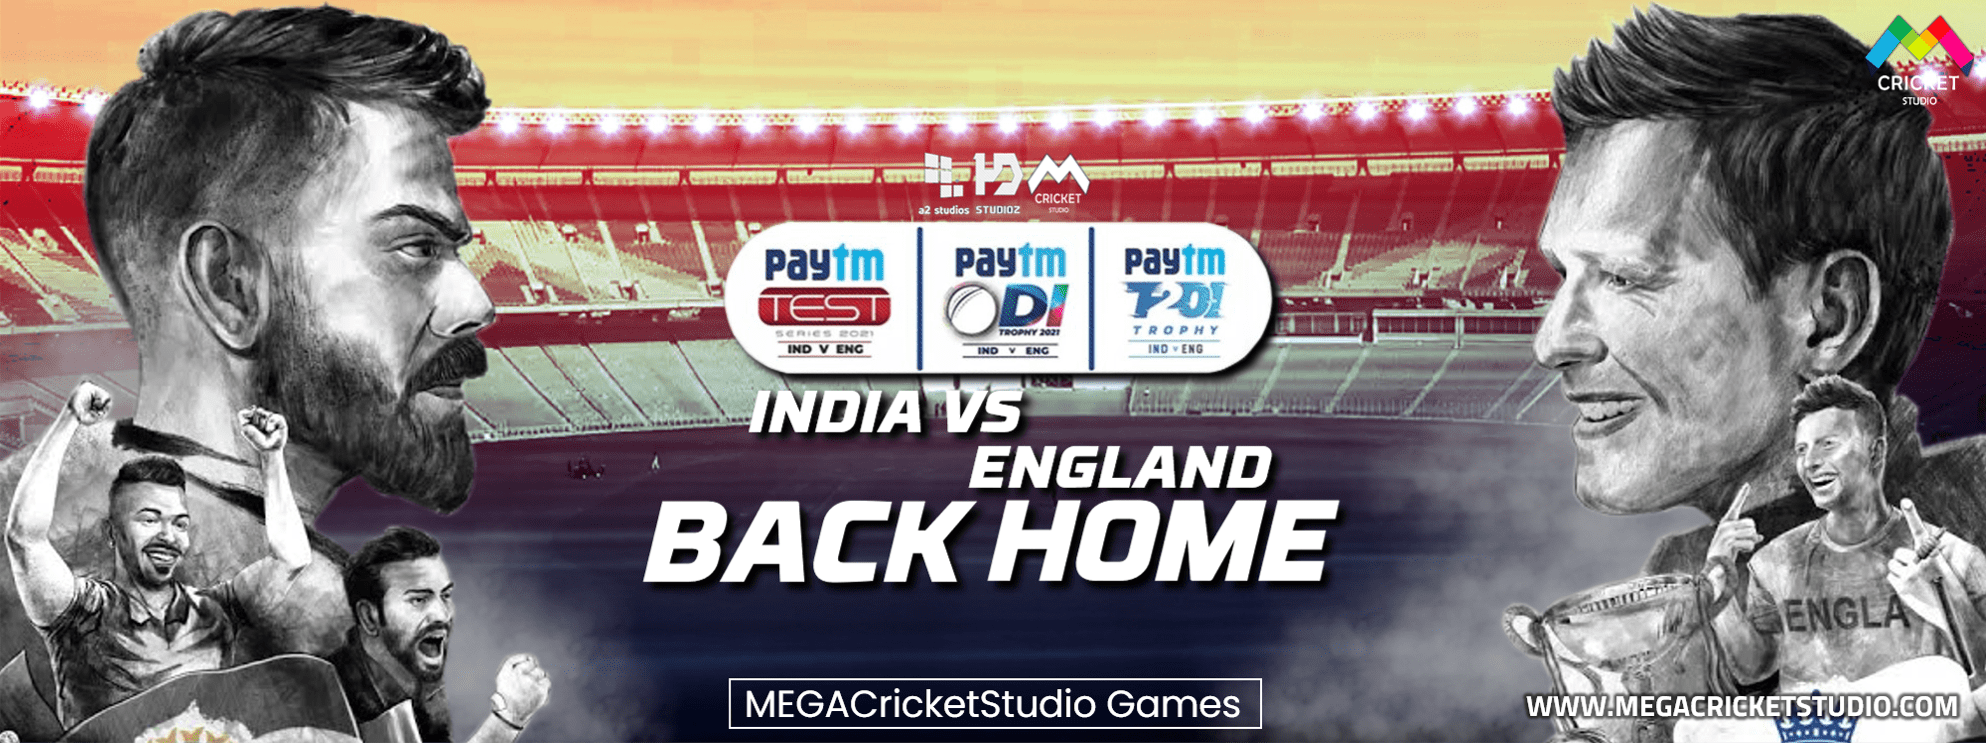 a2 hd studioz india vs england 2021 back home patch for ea cricket 07 download